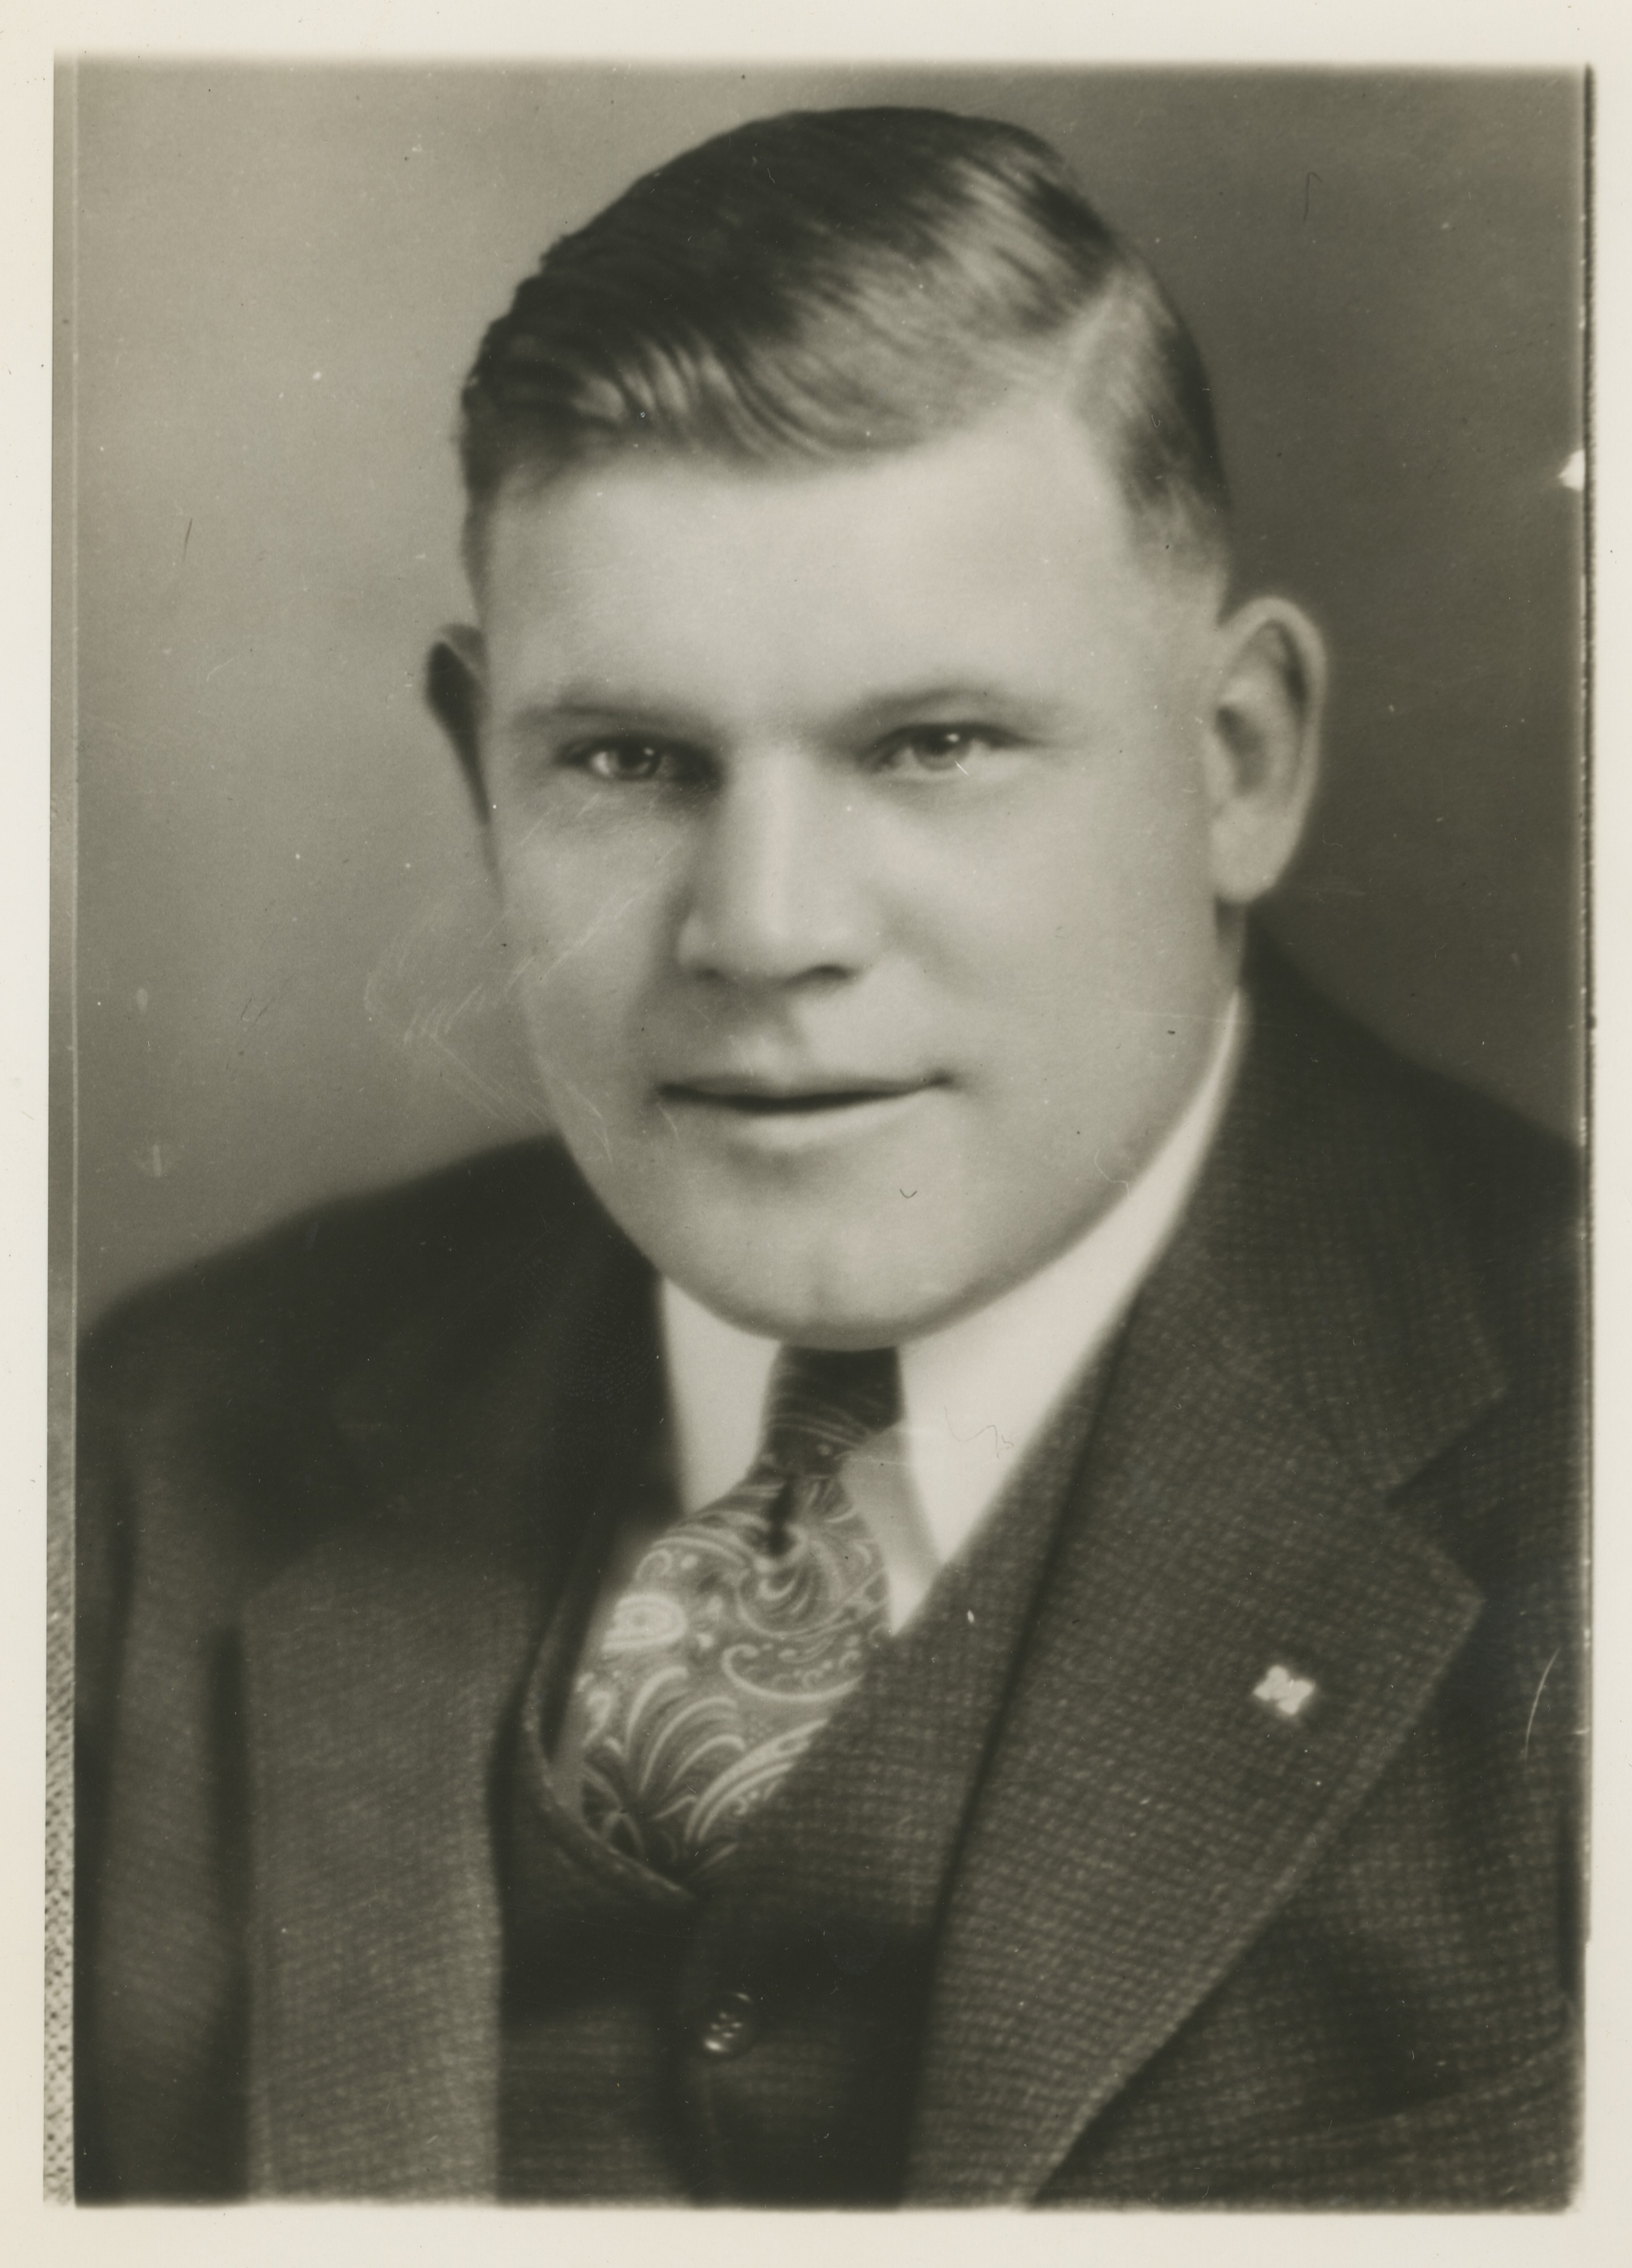 Wally Weber University Of Michigan Freshman Football Coach And Public Speaker 1939